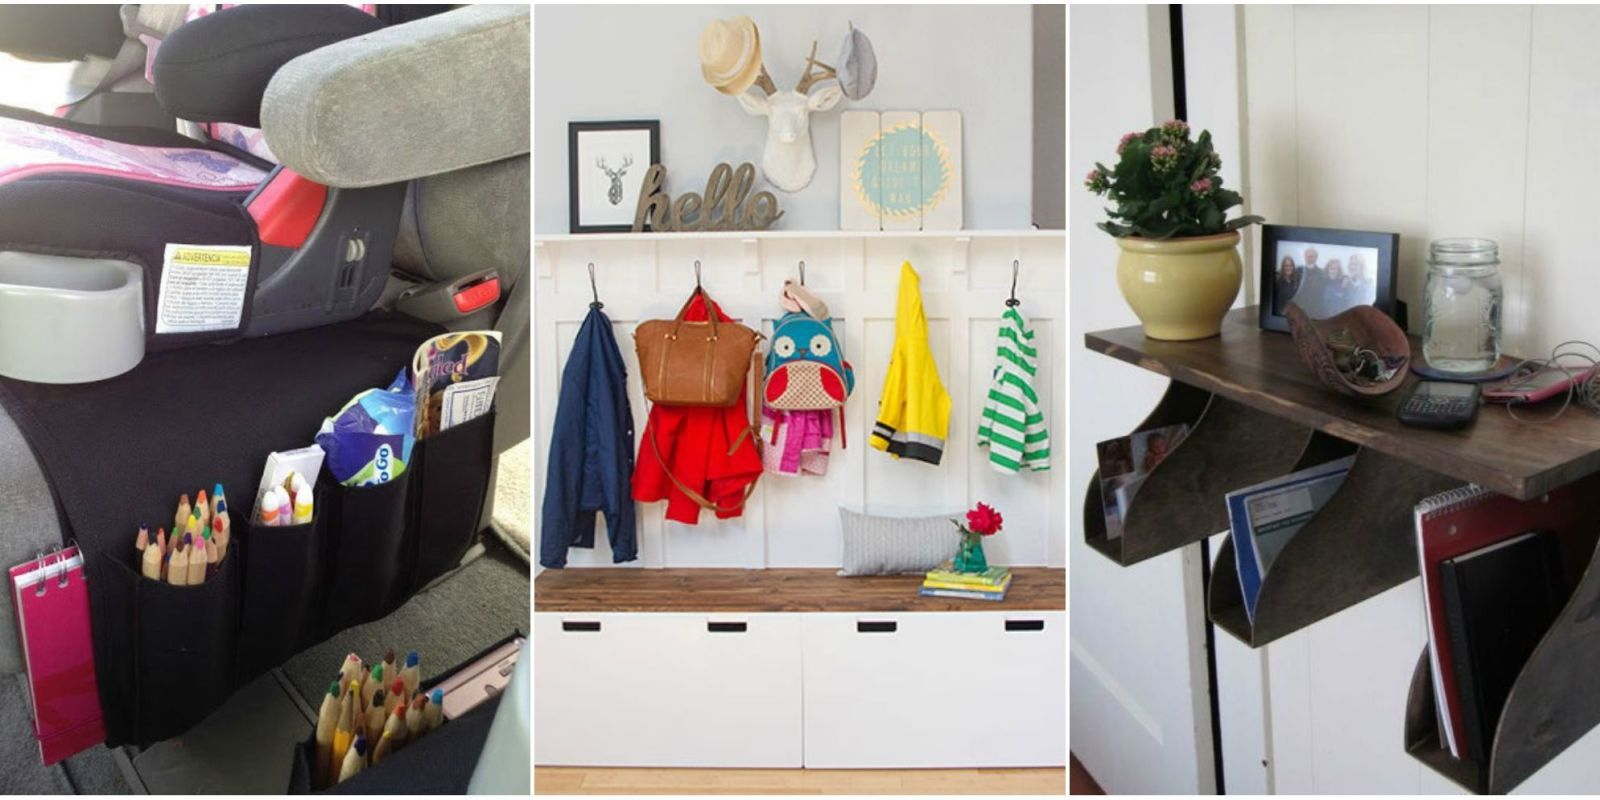 Even Though Most Homes Have A Few Key Trouble Spots (hello, Messy Closet),  Itu0027s Safe To Say Every Room Could Benefit From Some Extra Organization.